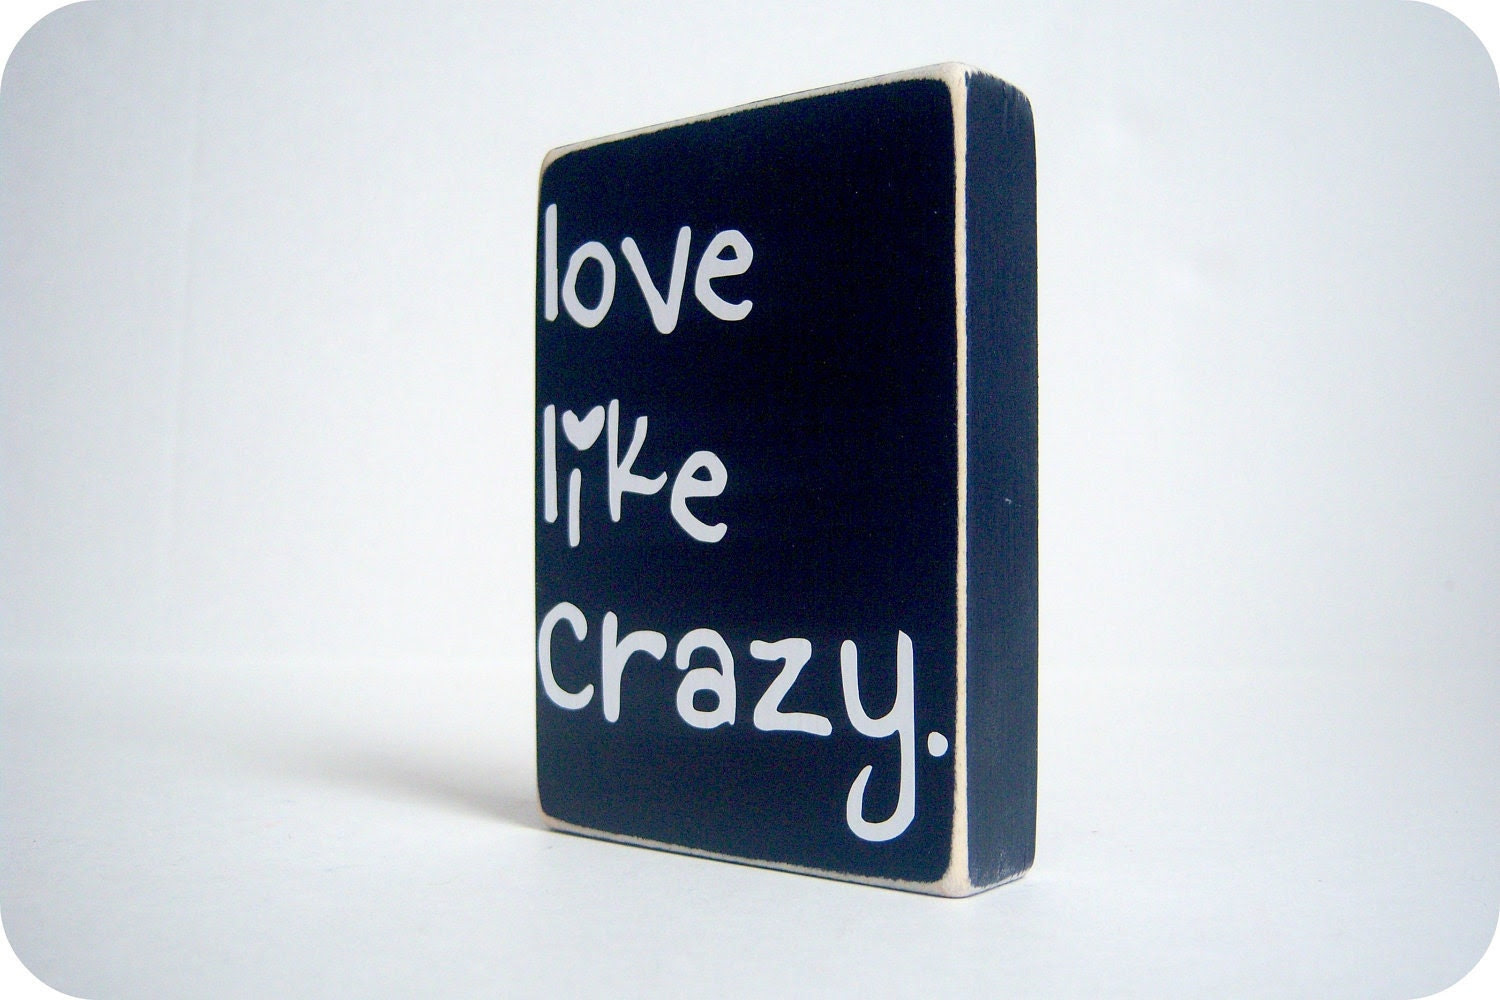 Love Like Crazy Home Decor by bubblewrappd on Etsy